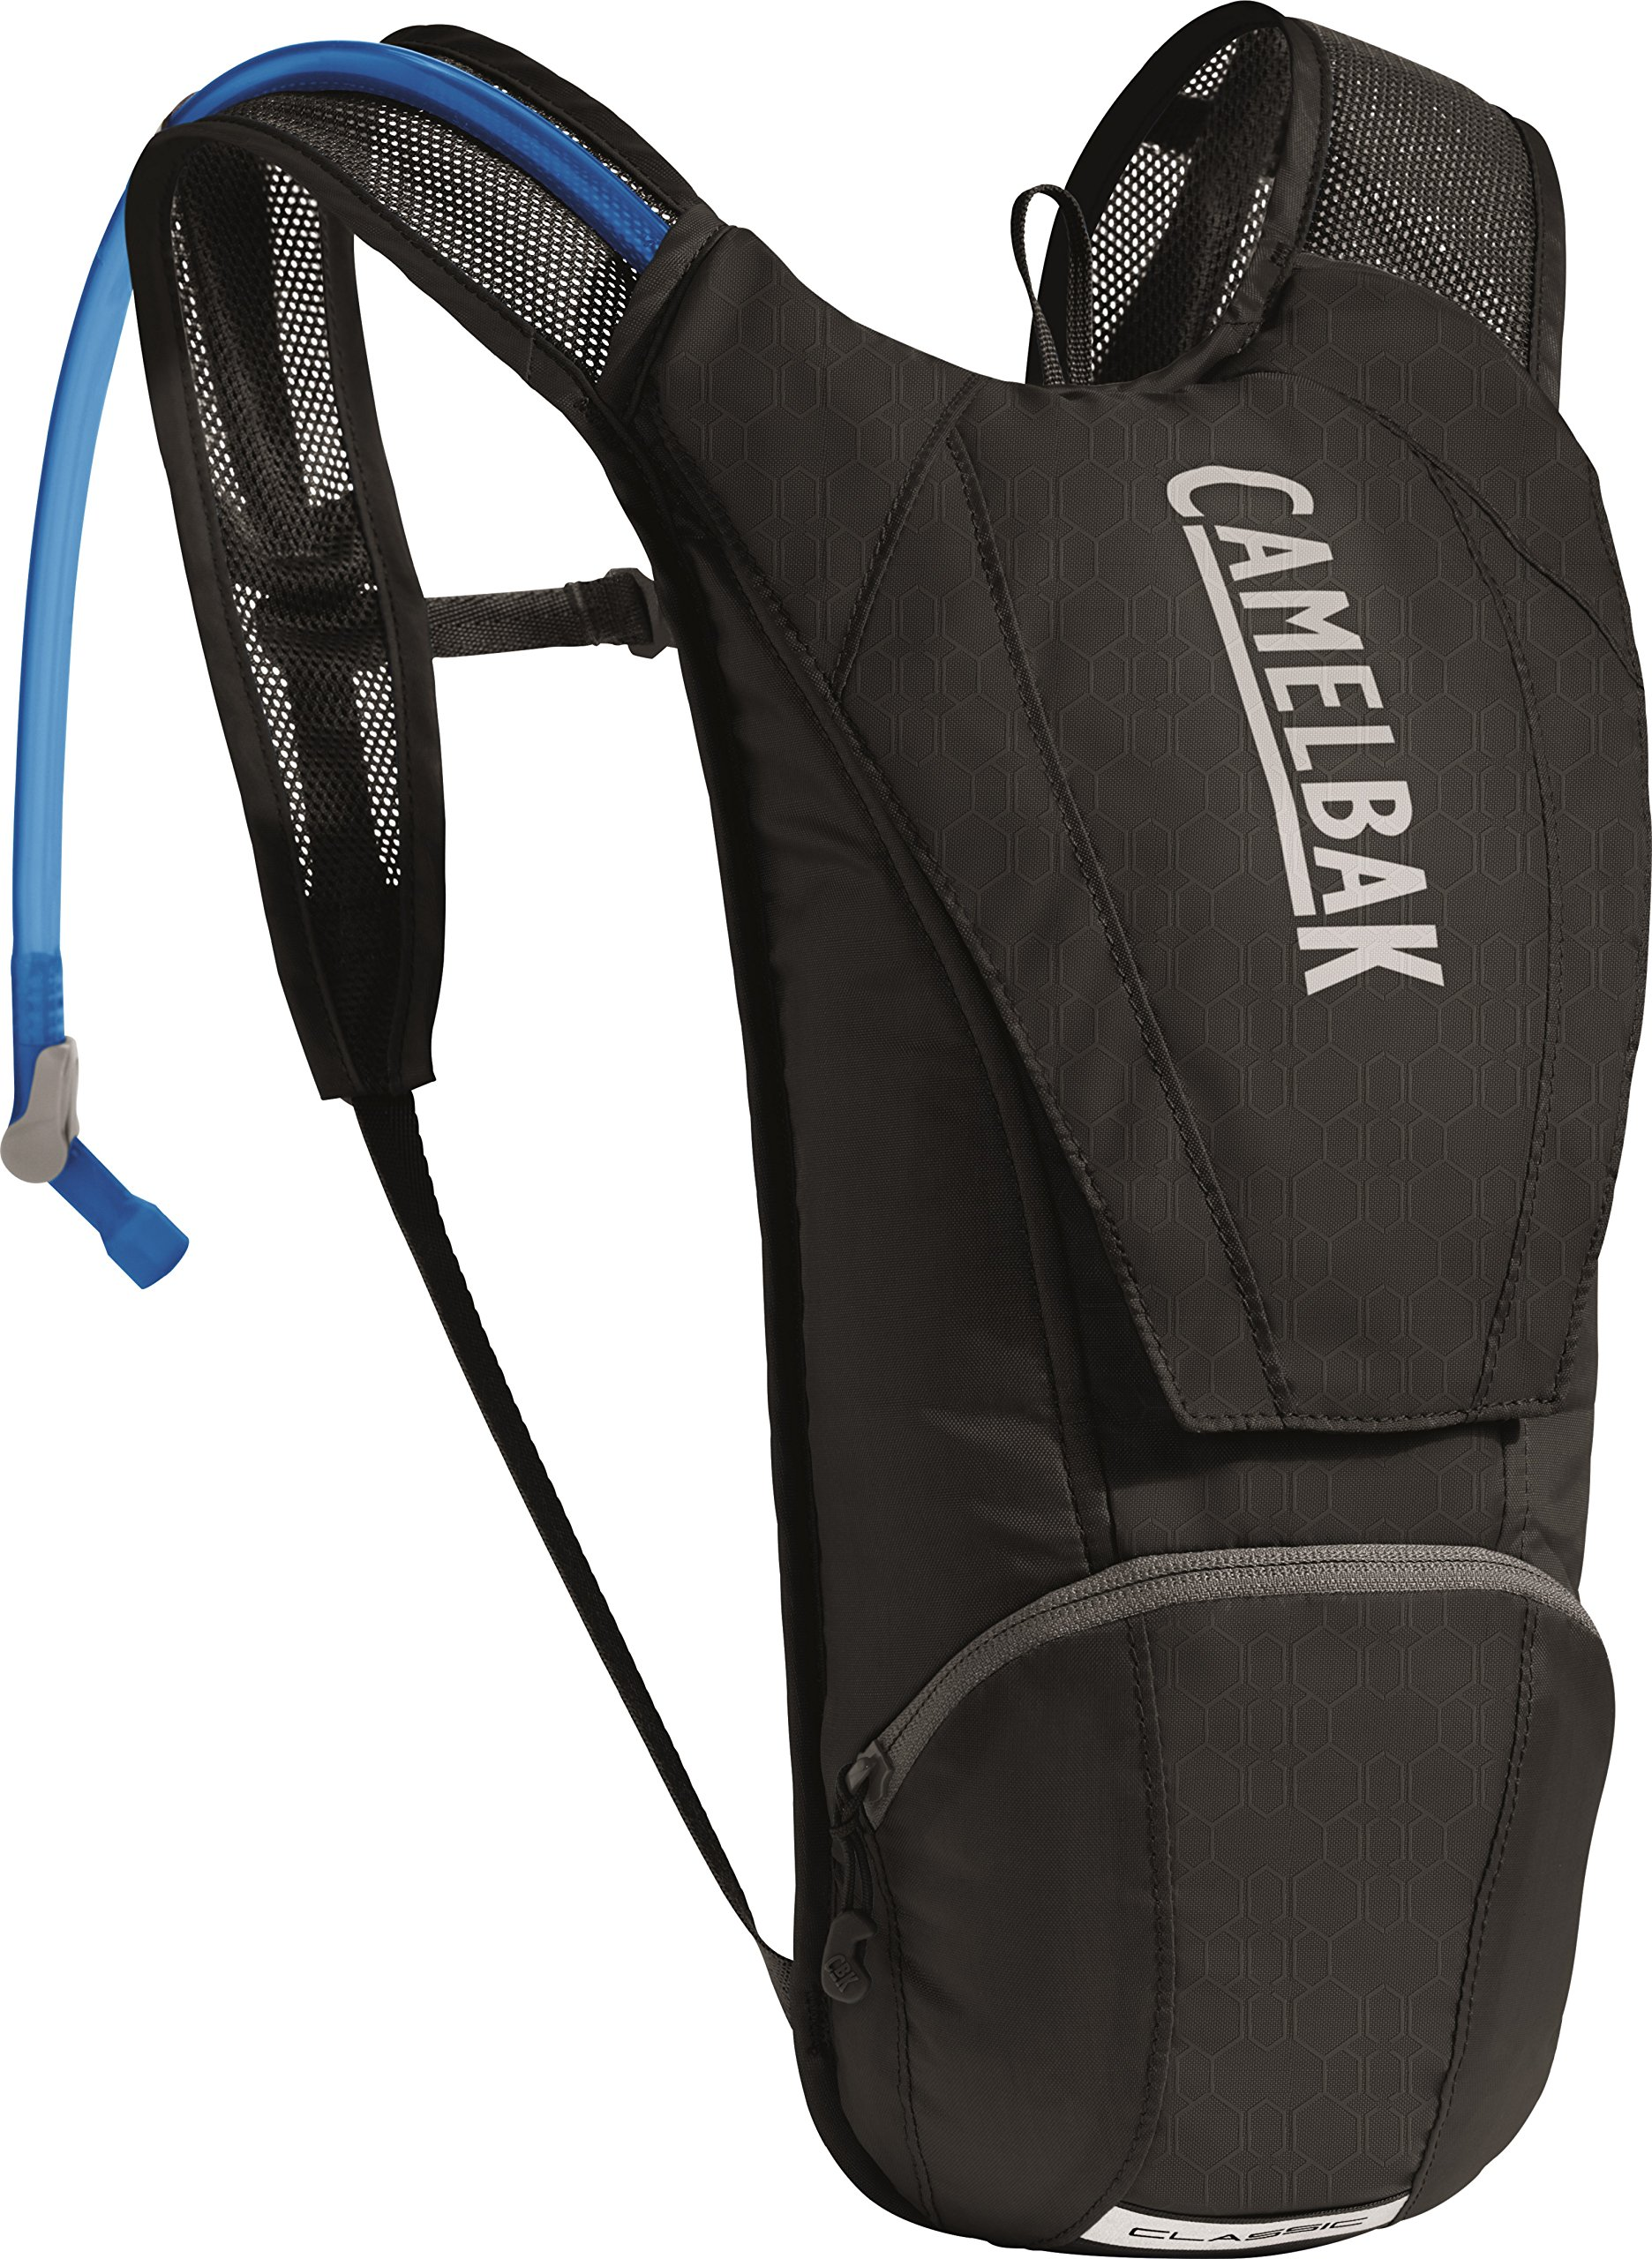 CamelBak 1121002000 Classic Crux Reservoir Hydration Pack, Black/Graphite, 2.5 L/85 oz